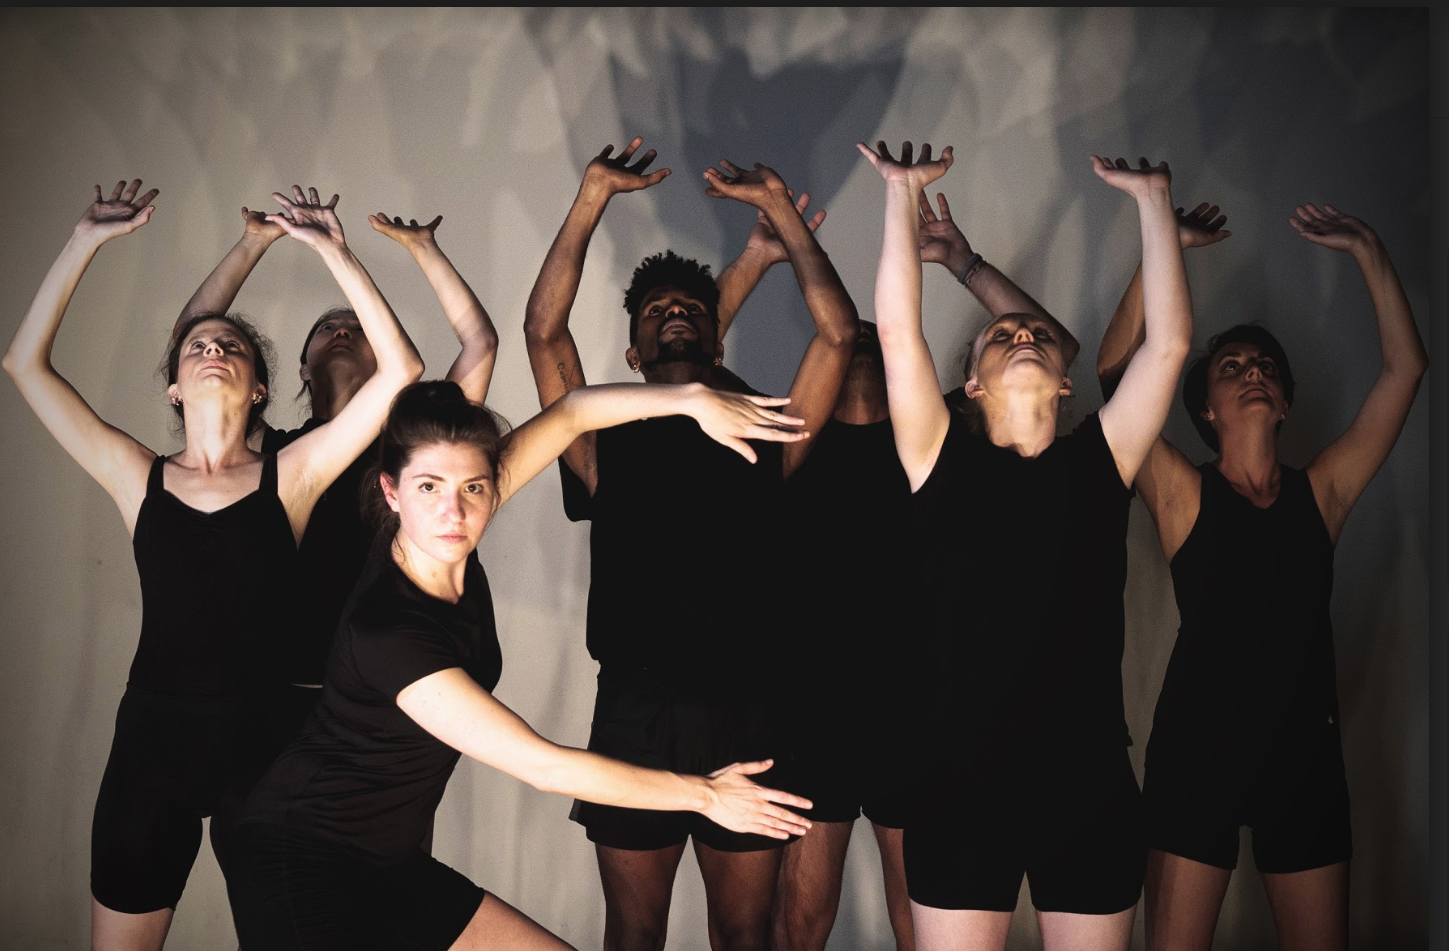 ShaleighDanceWorks performers dancing in unison with hands raised